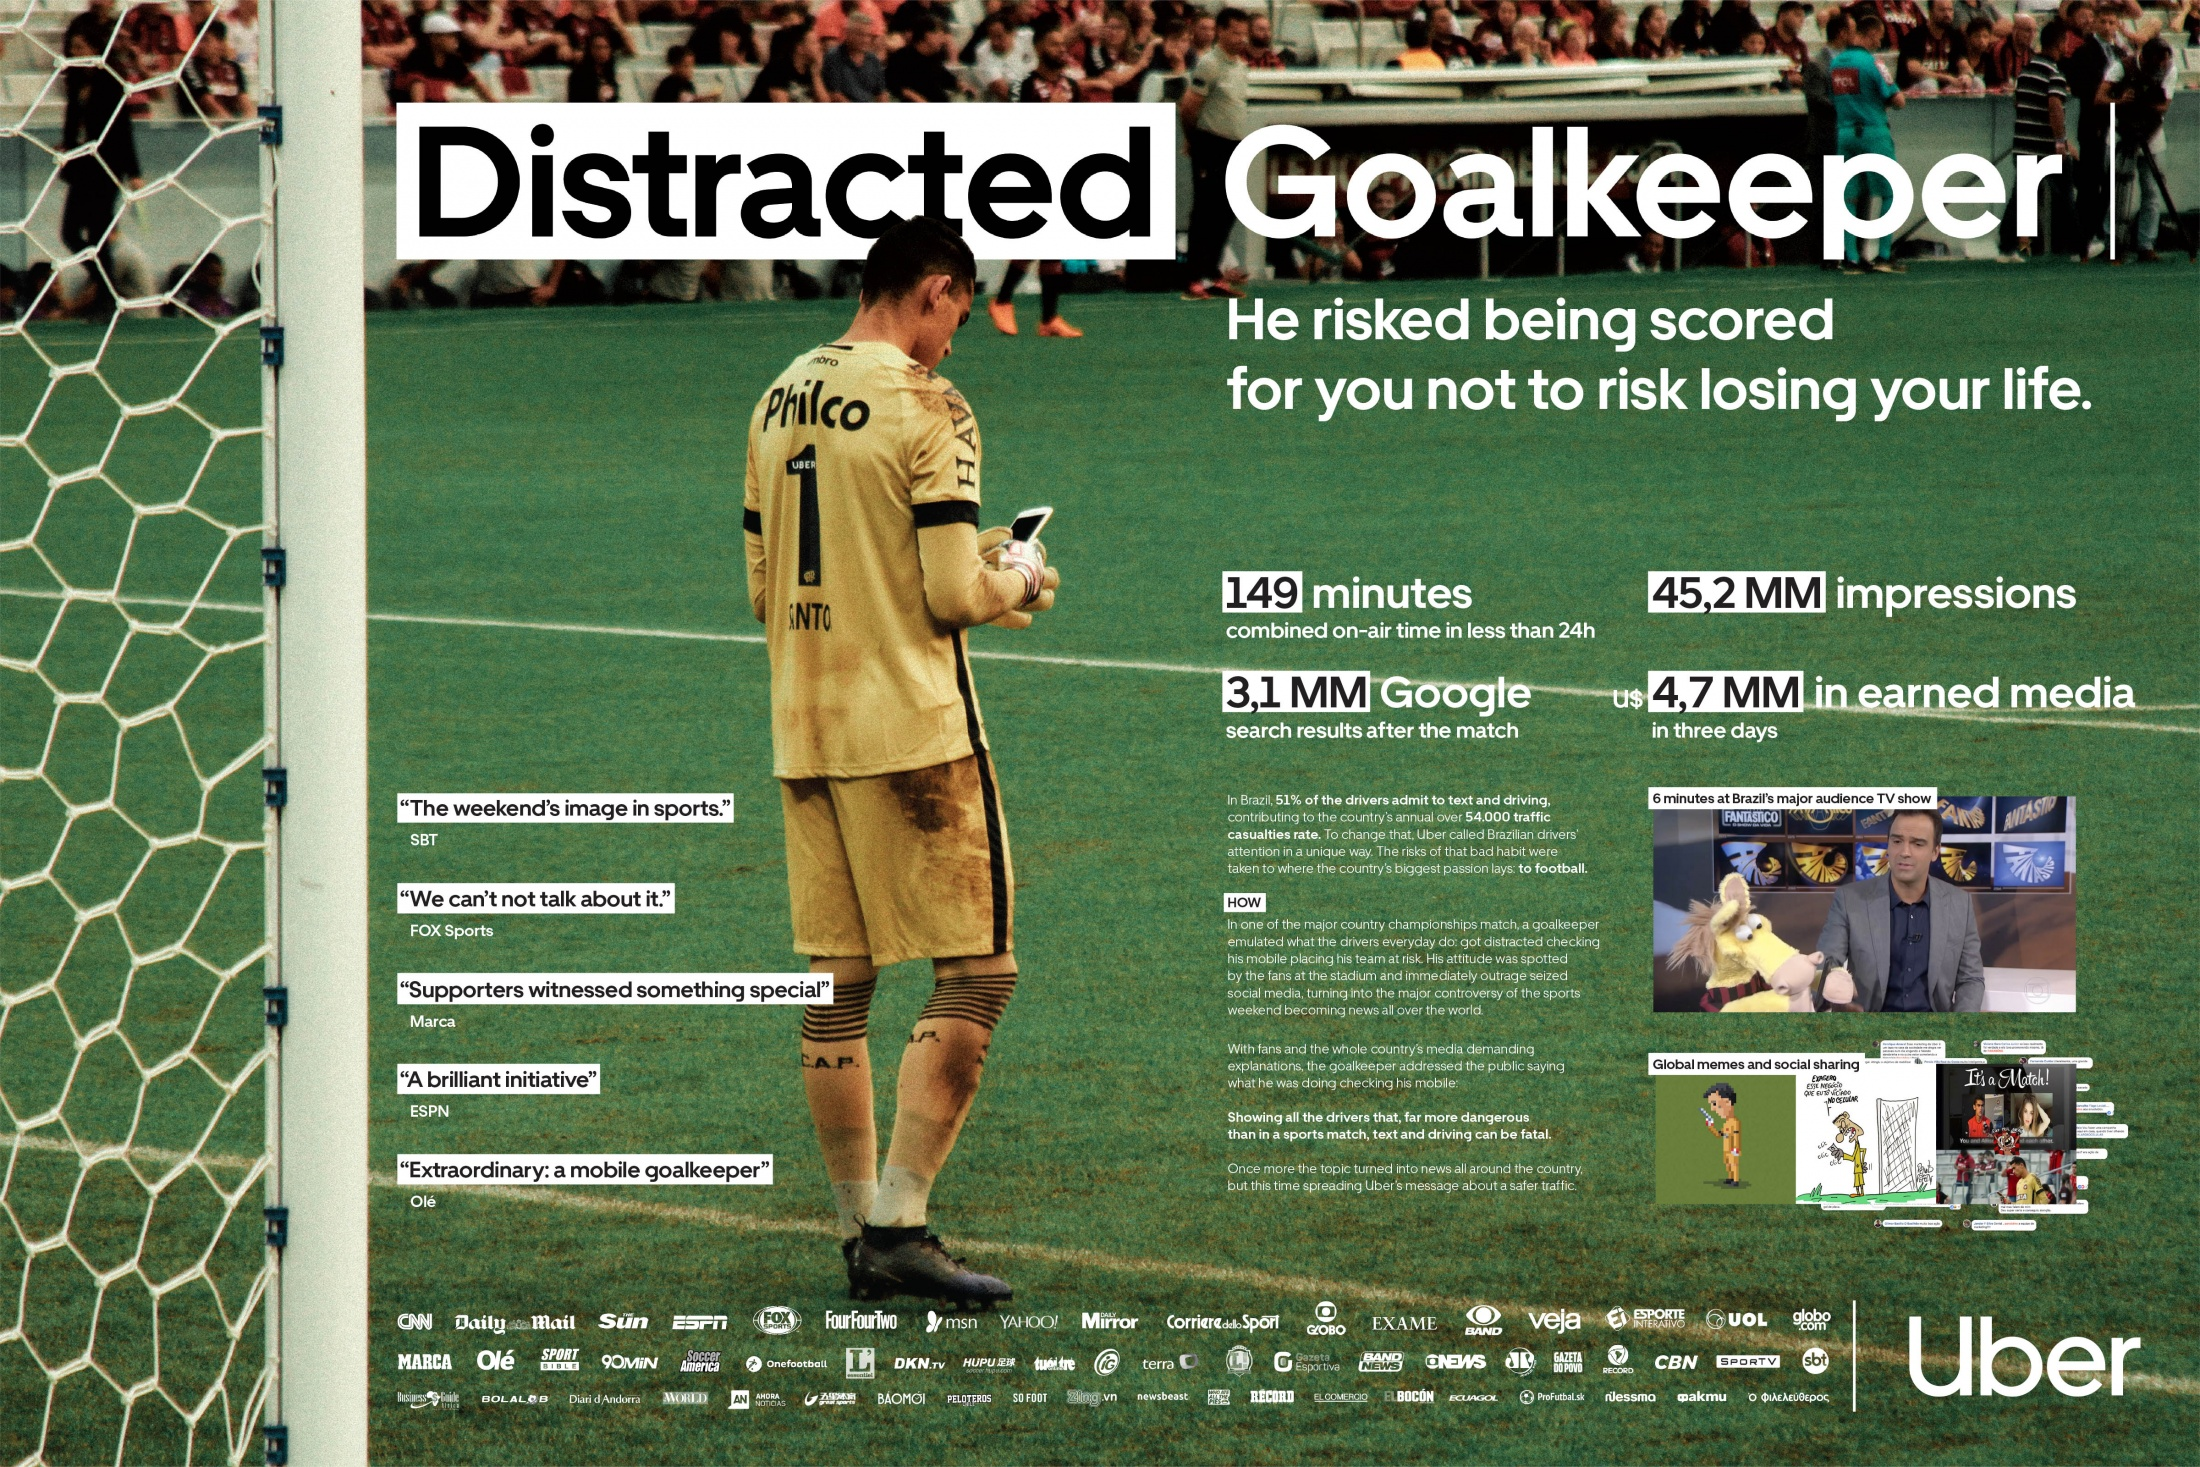 Thumbnail for Distracted Goalkeeper